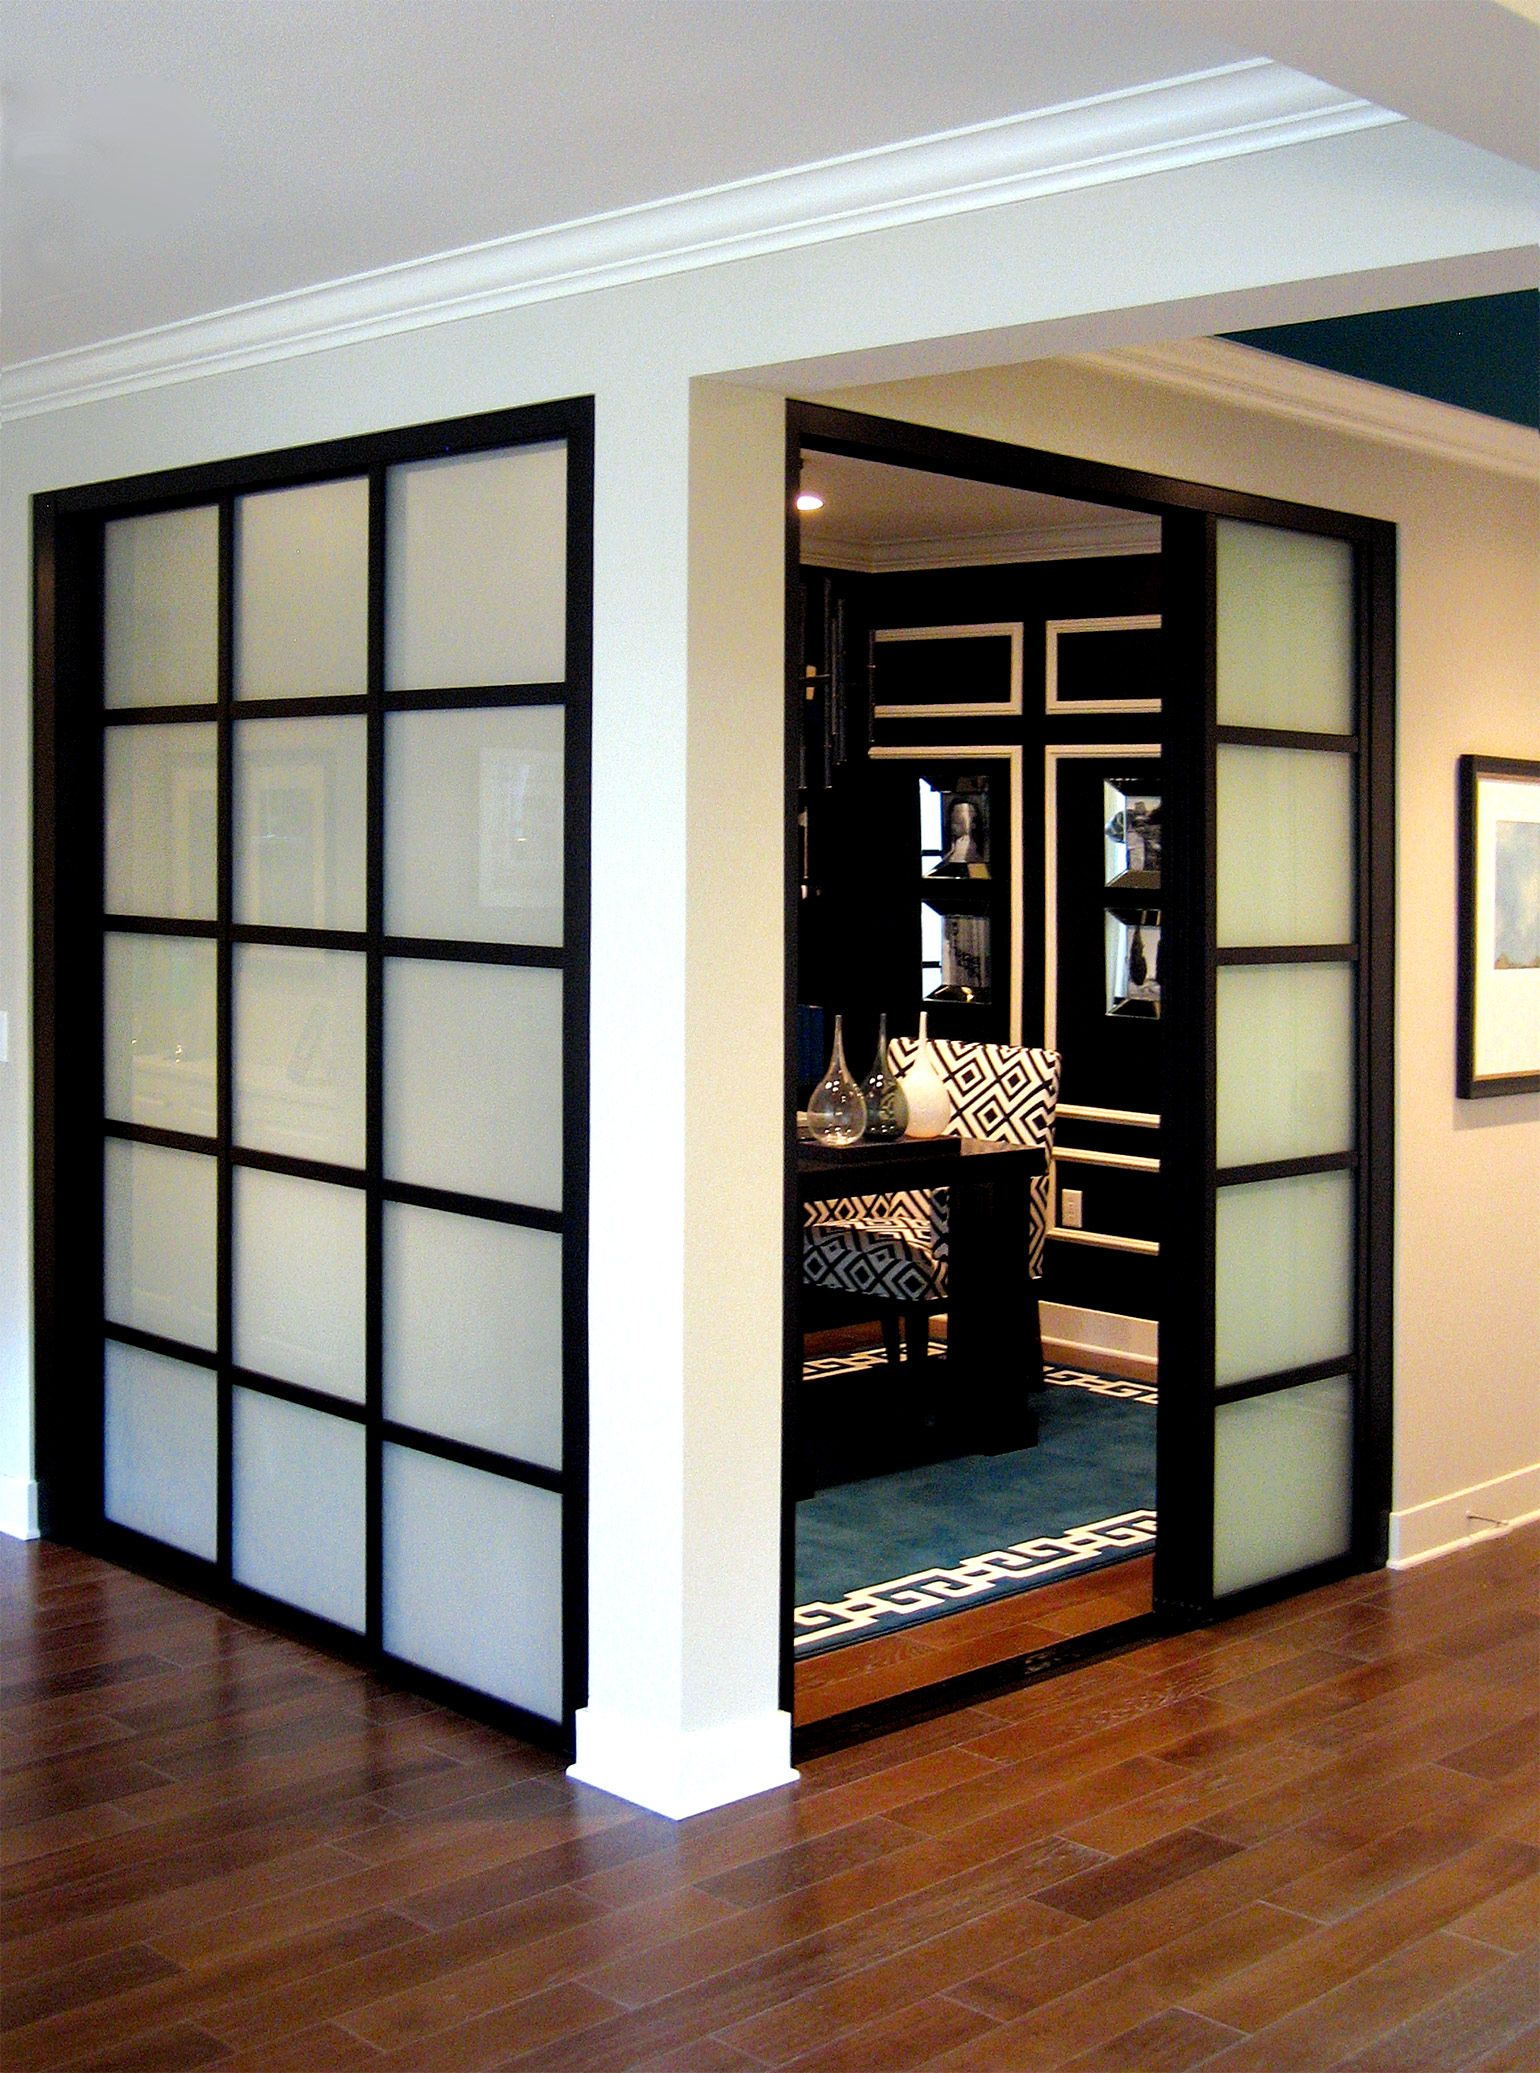 frosted glass sliding doors interior on double glass wall slide doors room divider doors sliding doors interior glass doors patio room divider doors sliding doors